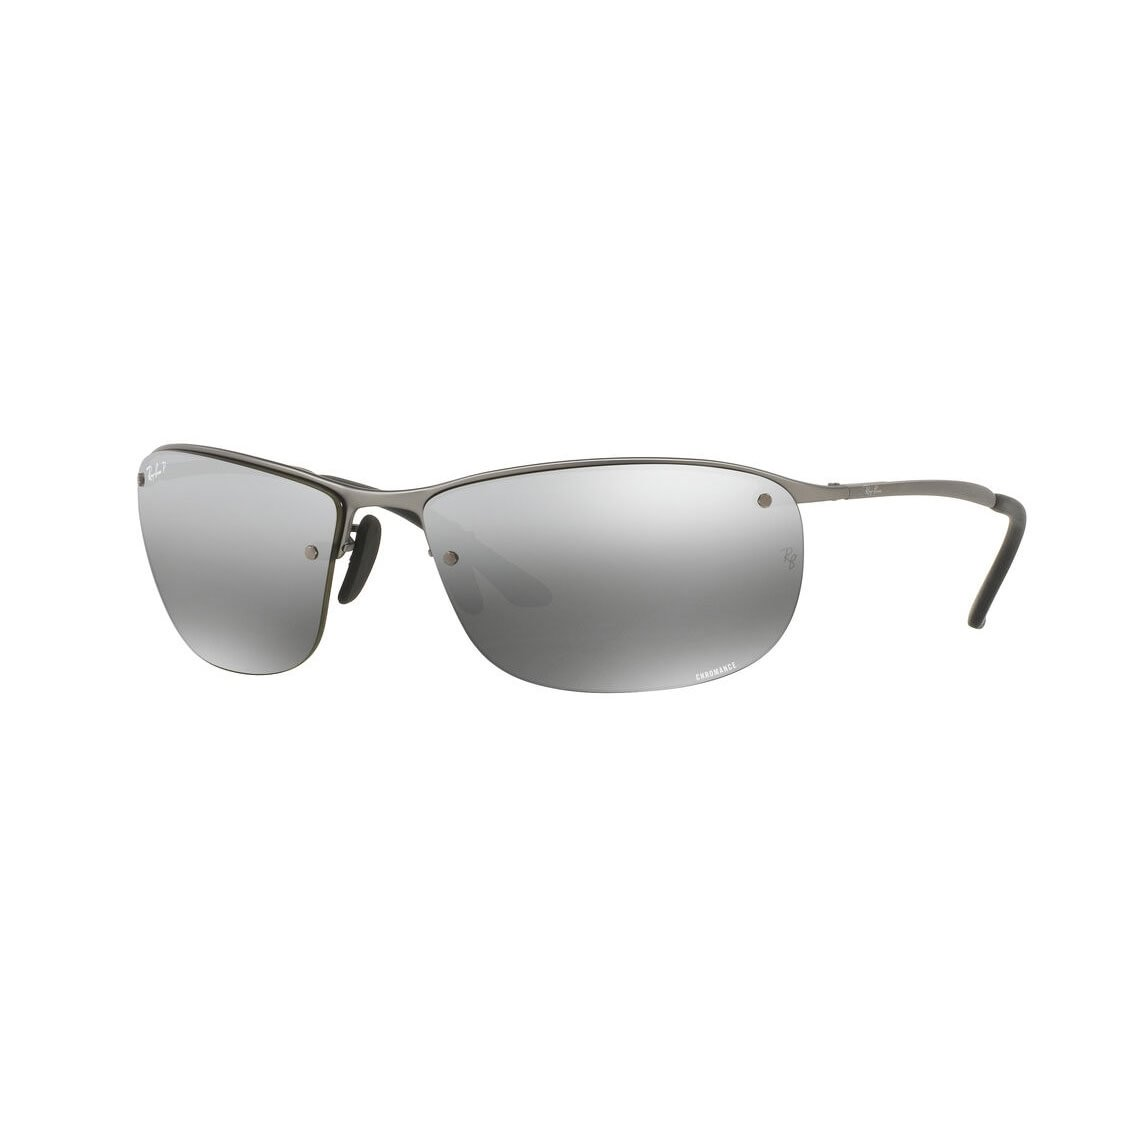 Ray-Ban solglasögon RB3542 Chromance